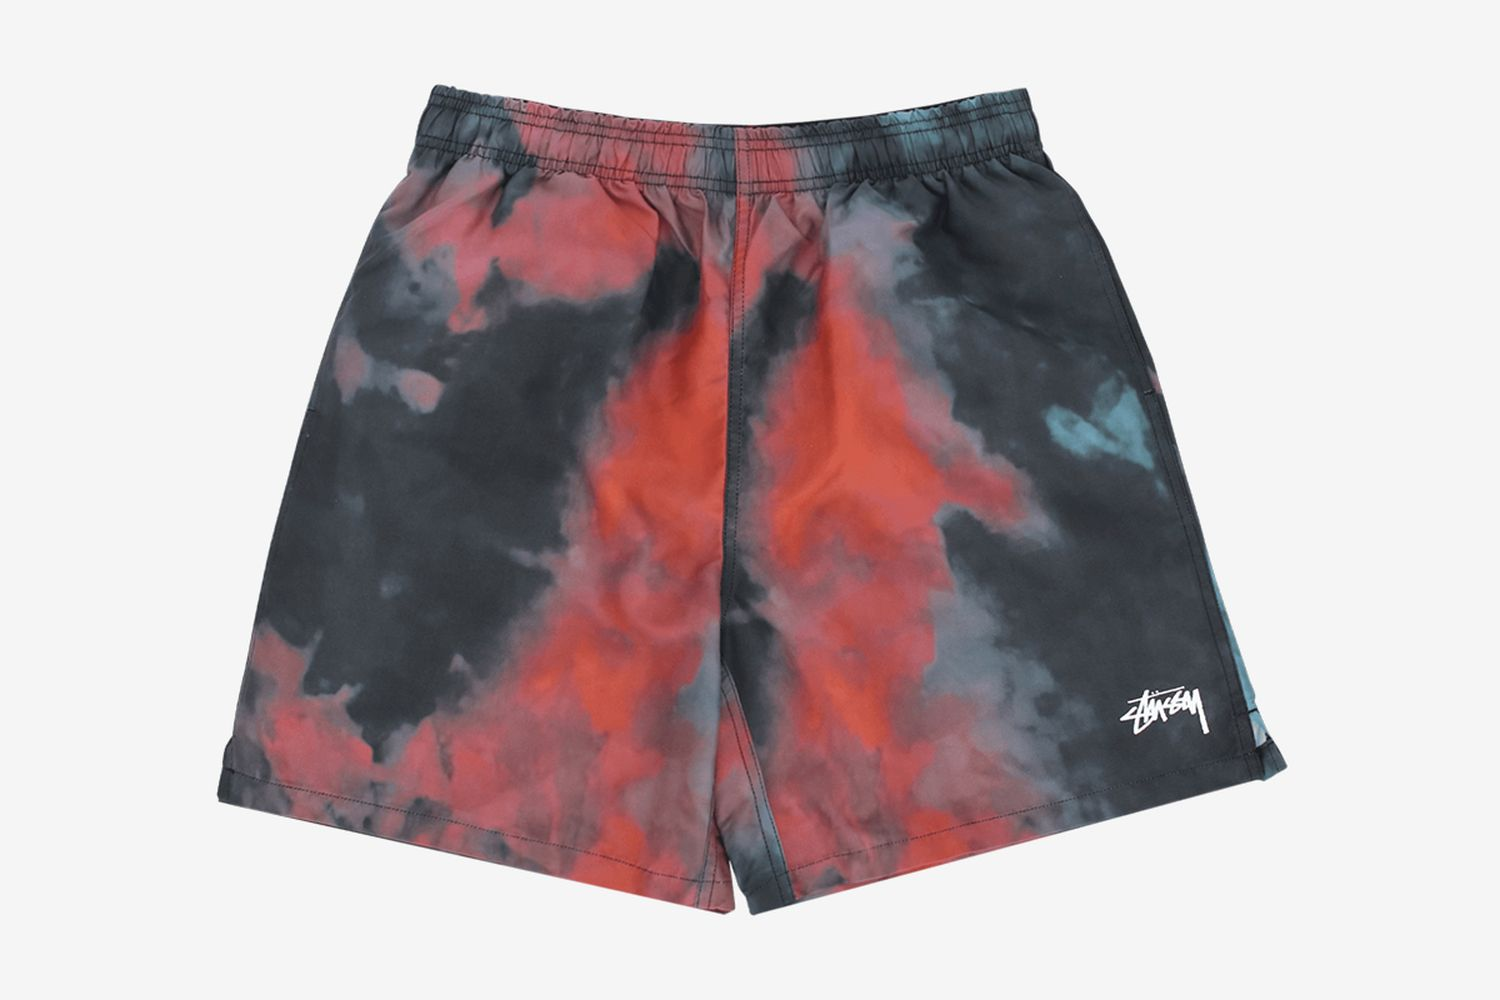 Dark Dye Water Shorts